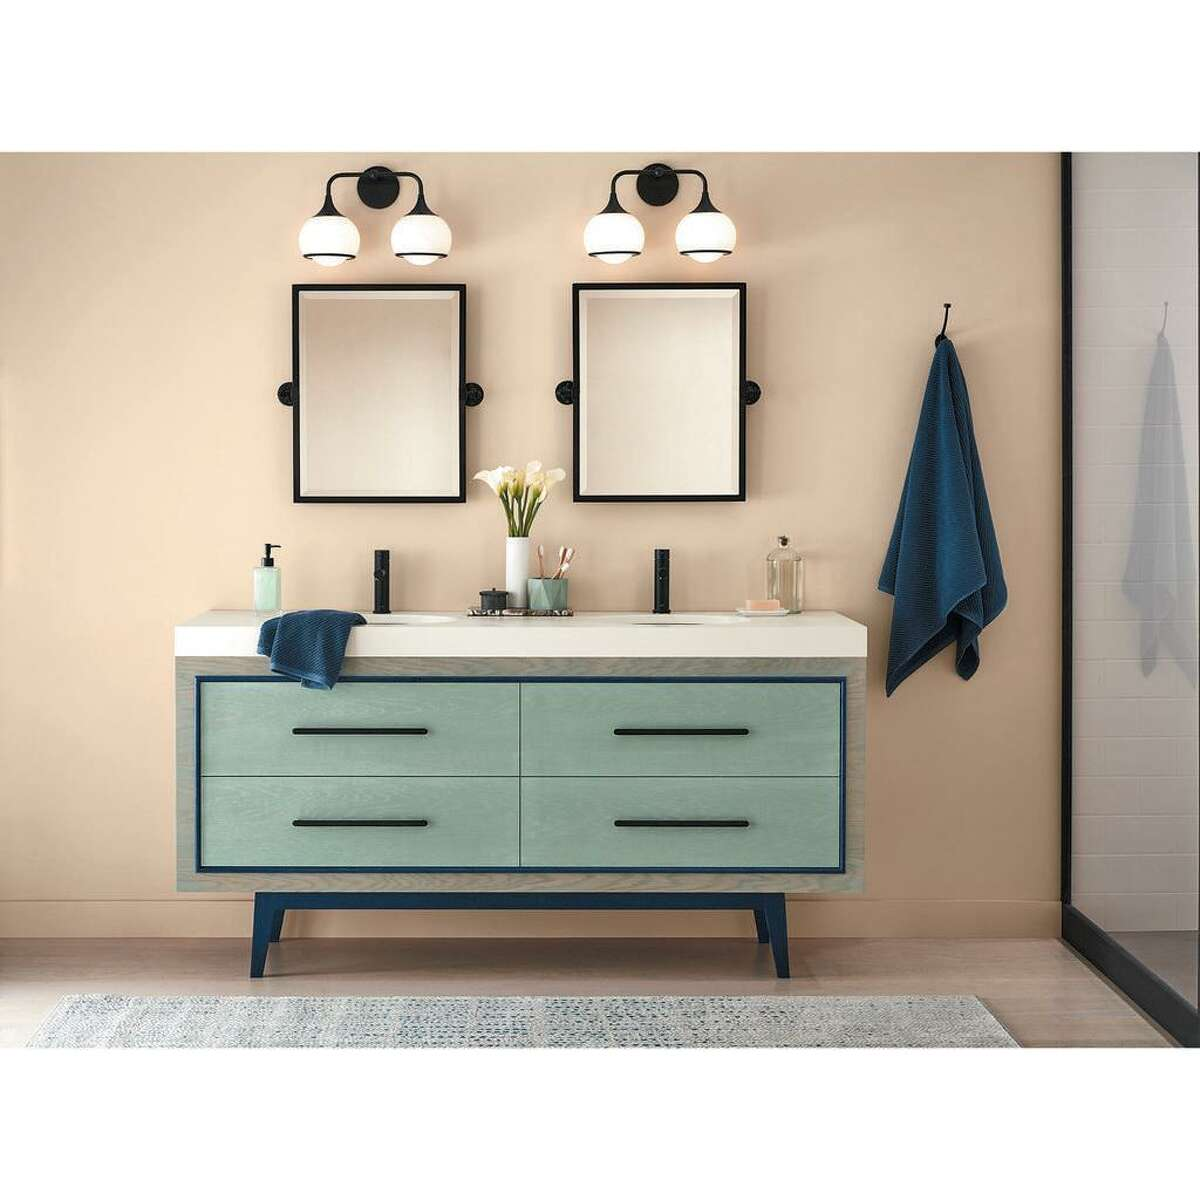 Minwax has named Vintage Blue, a soft blue-green stain, as its first Color of the Year.